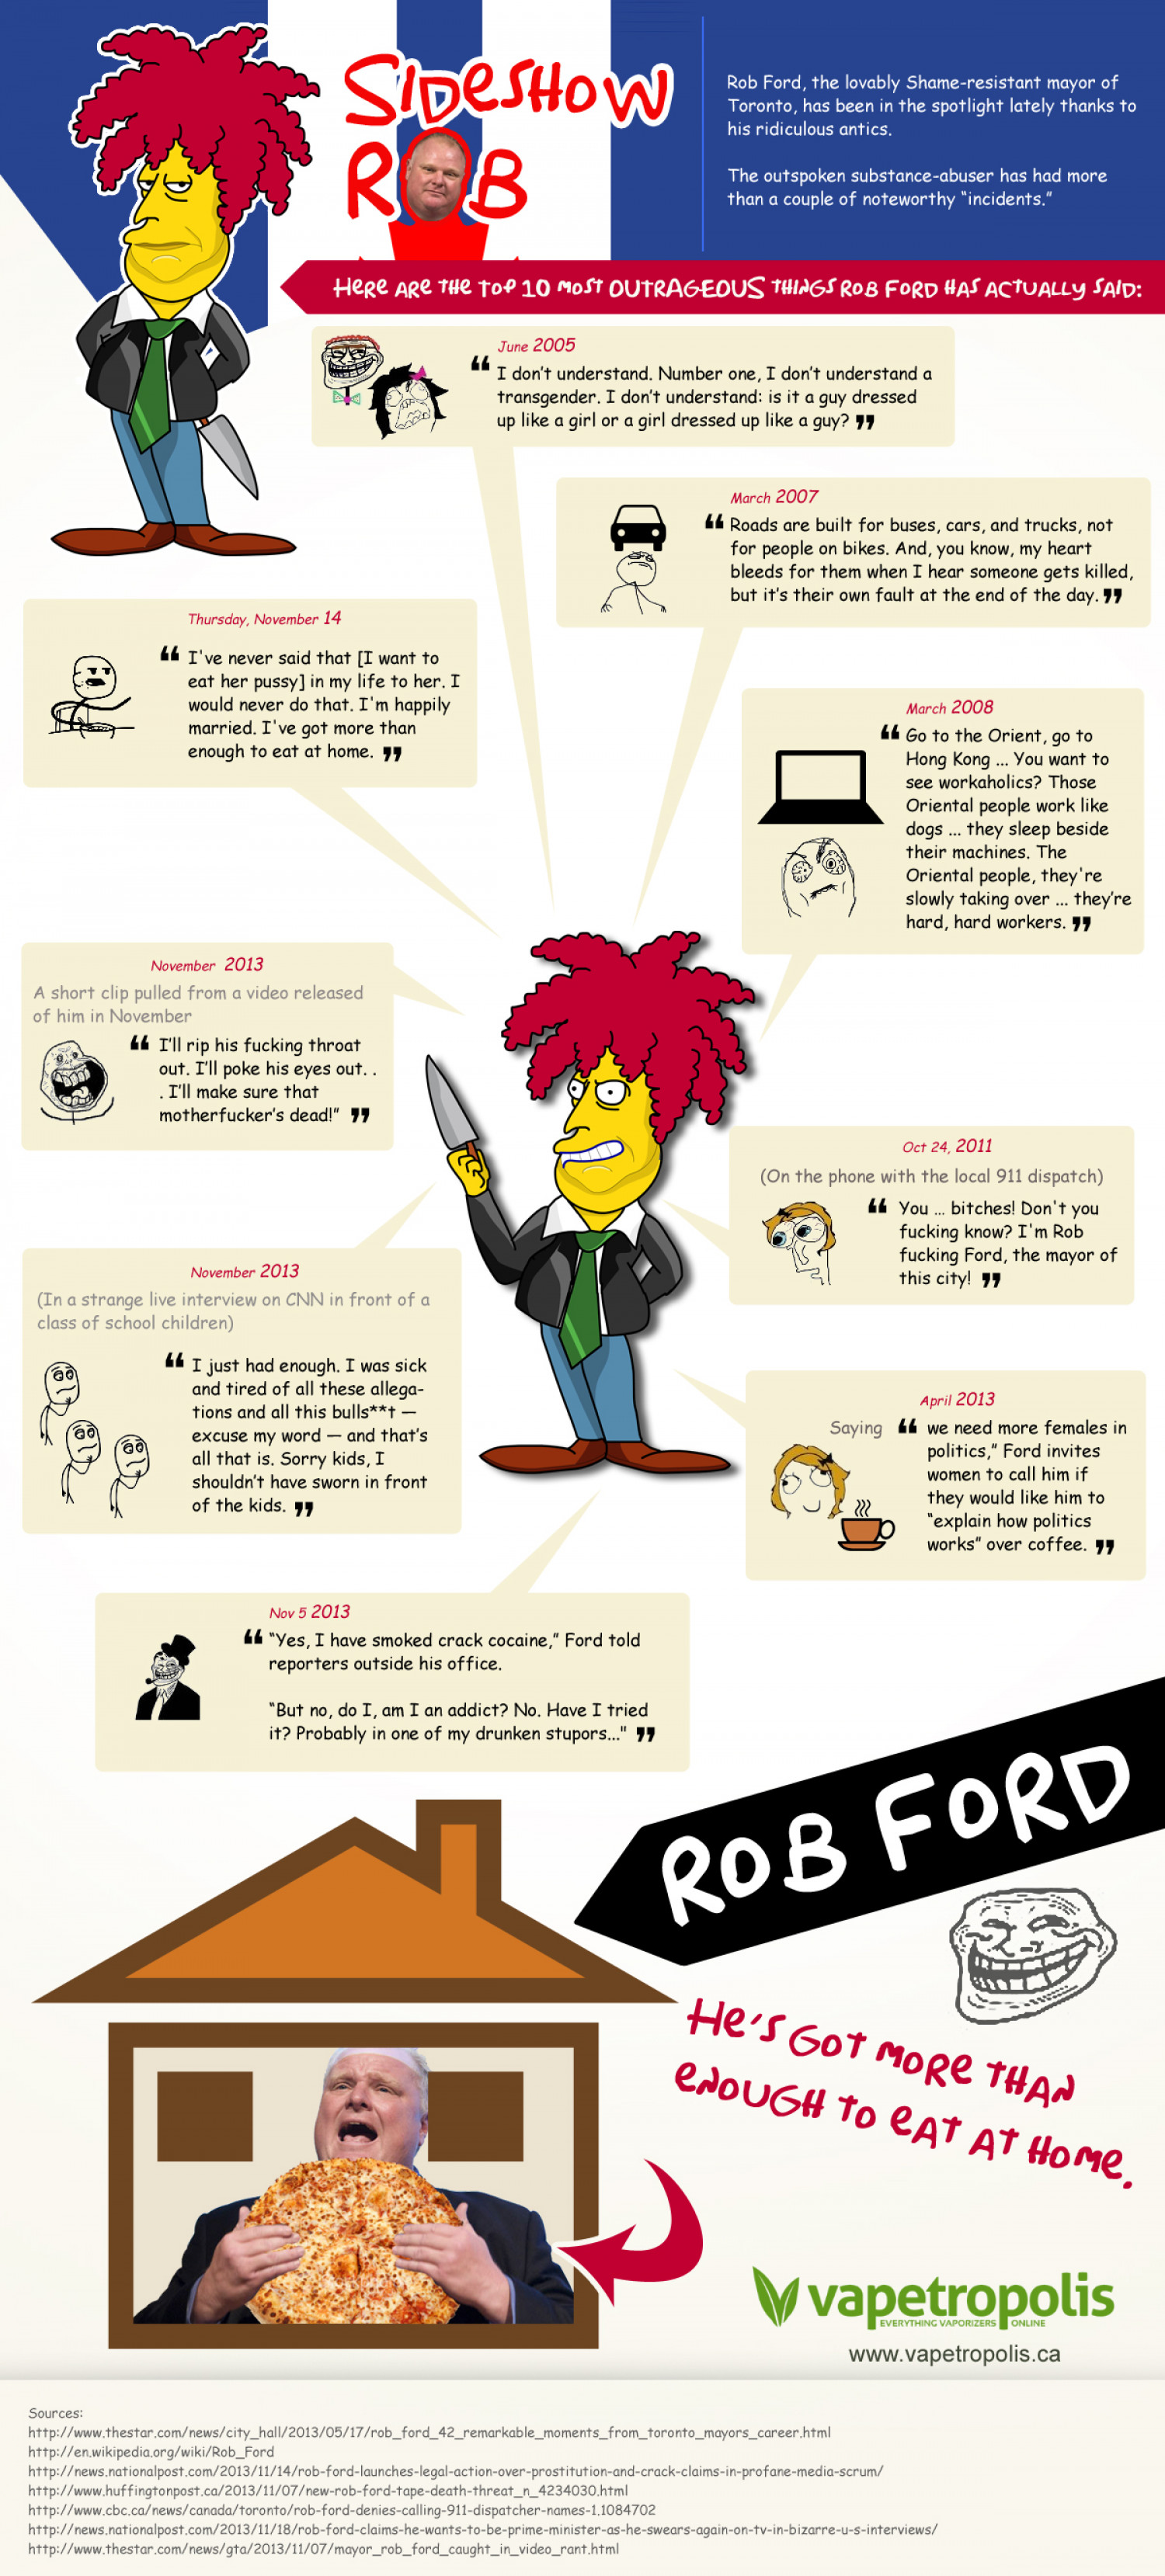 Slideshow ROB Infographic